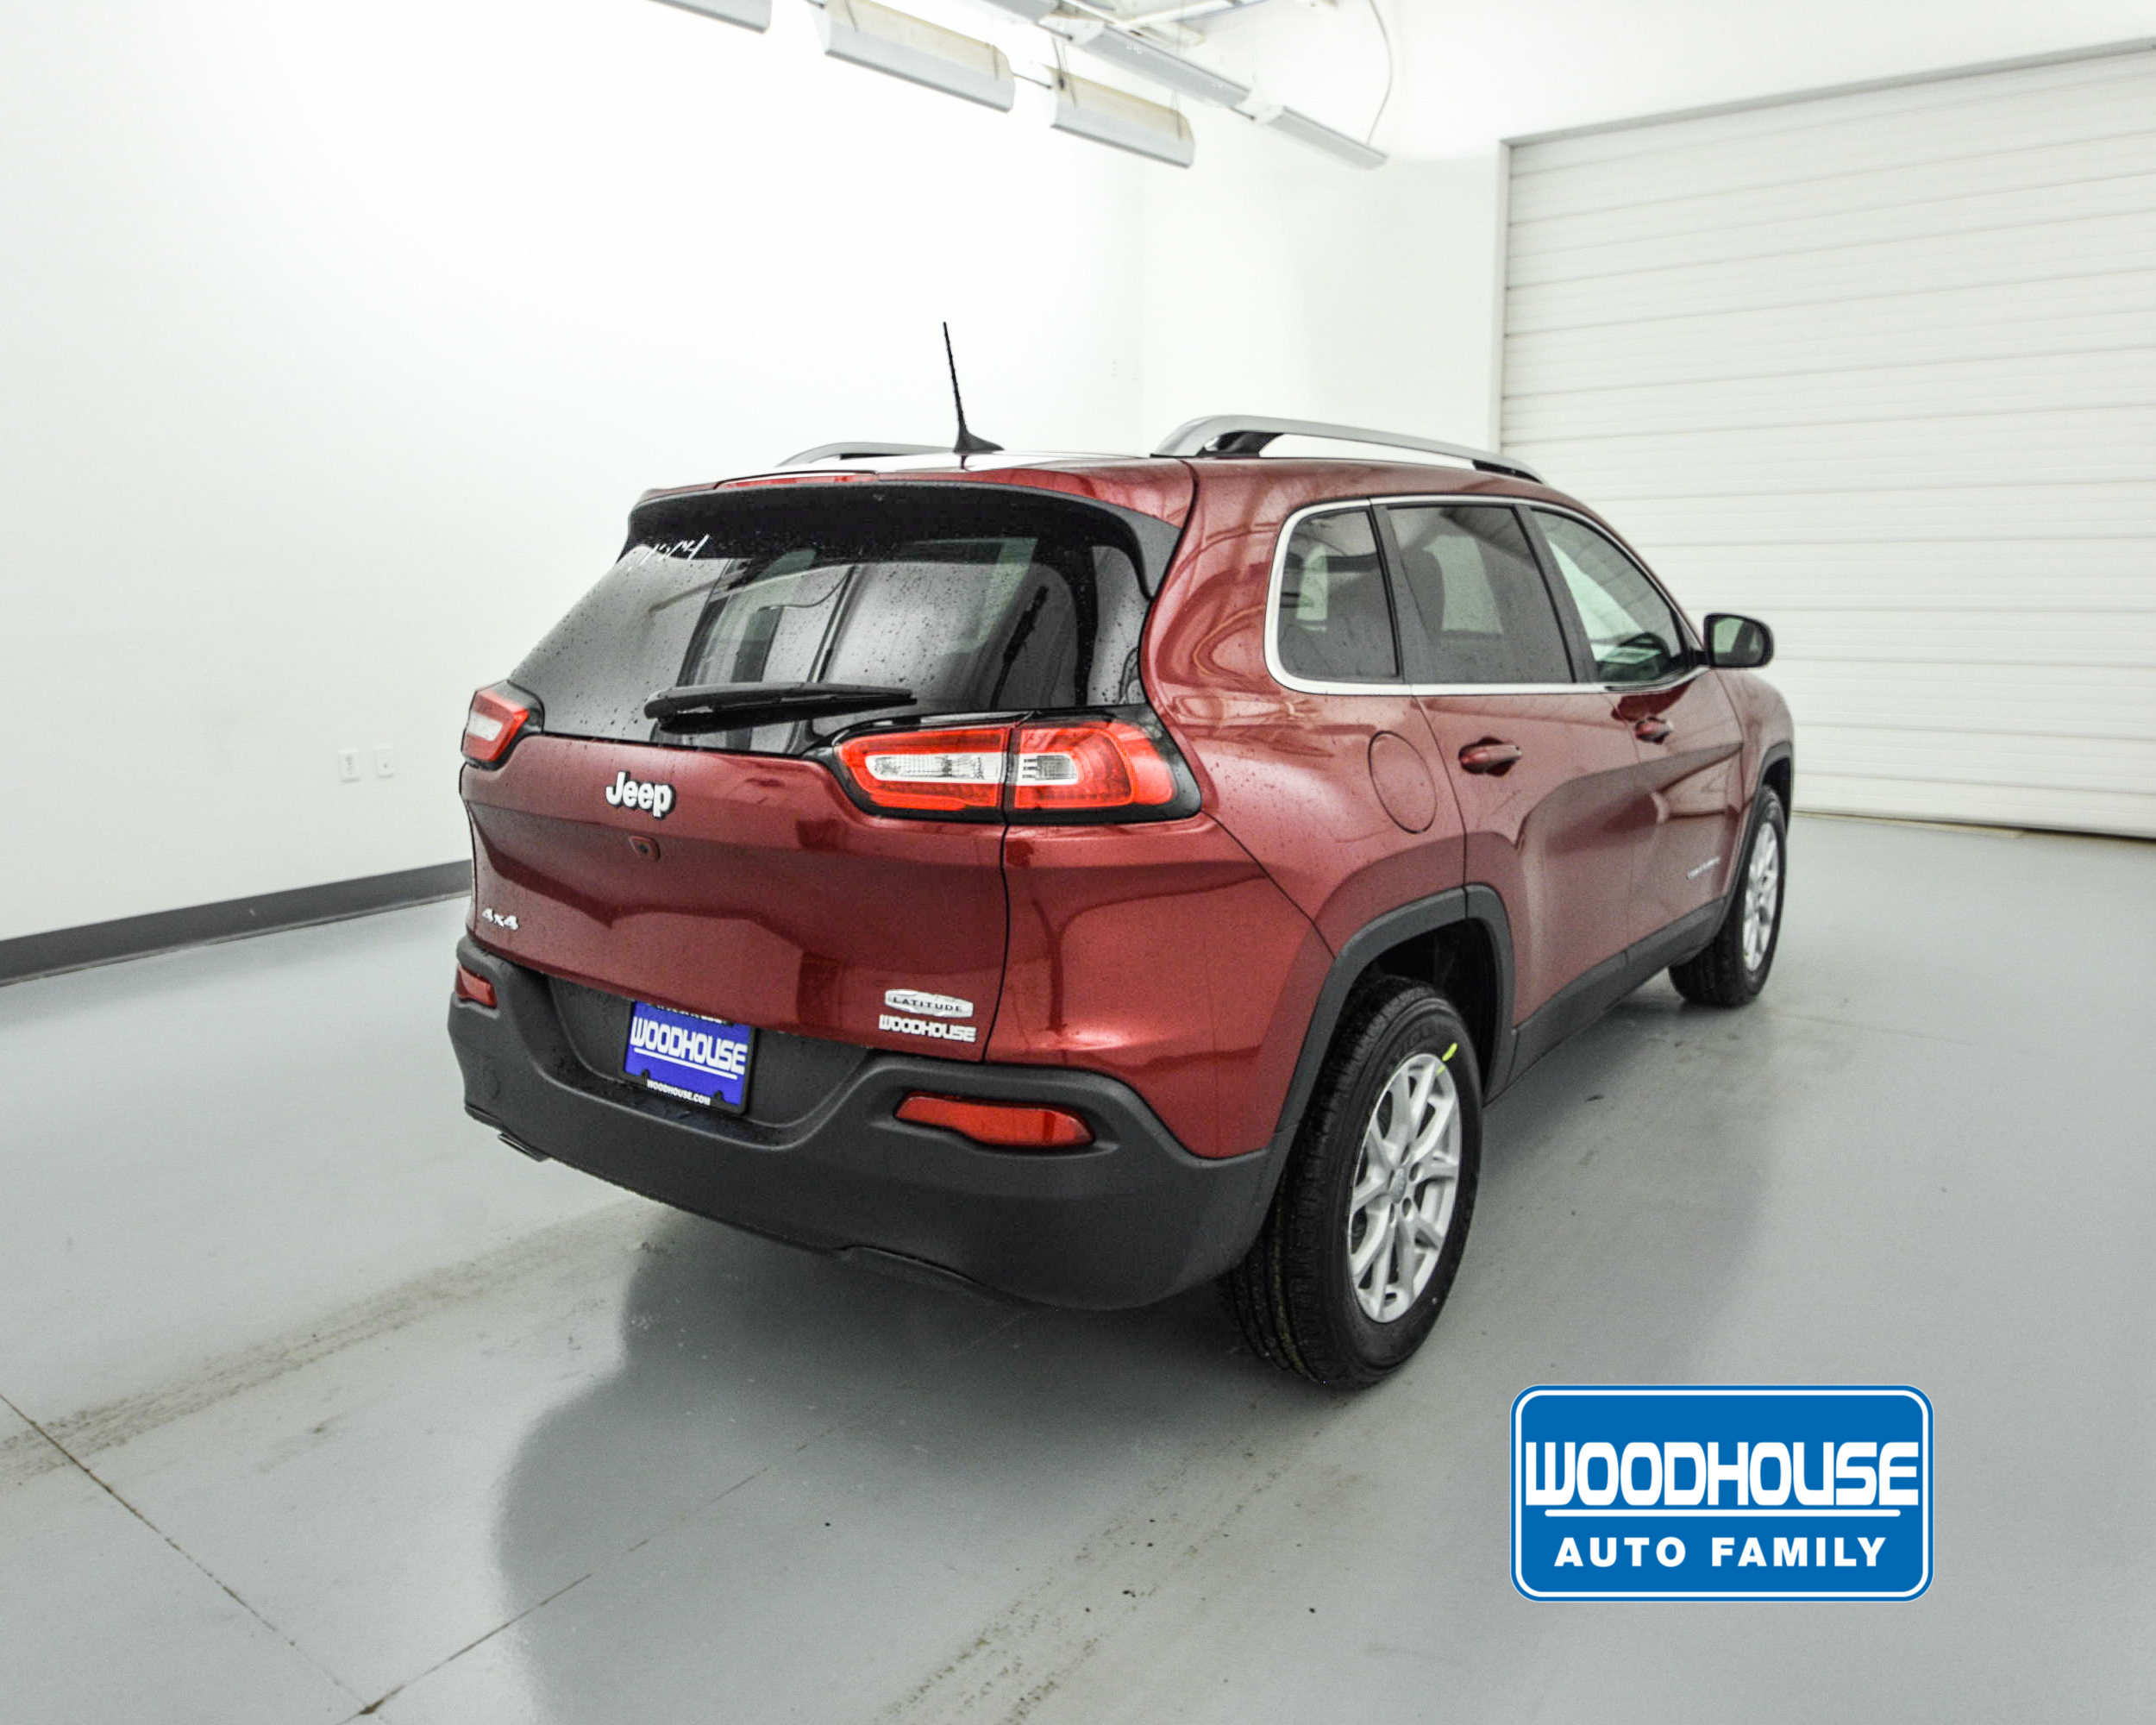 Jeep Cherokee For Sale Woodhouse Auto